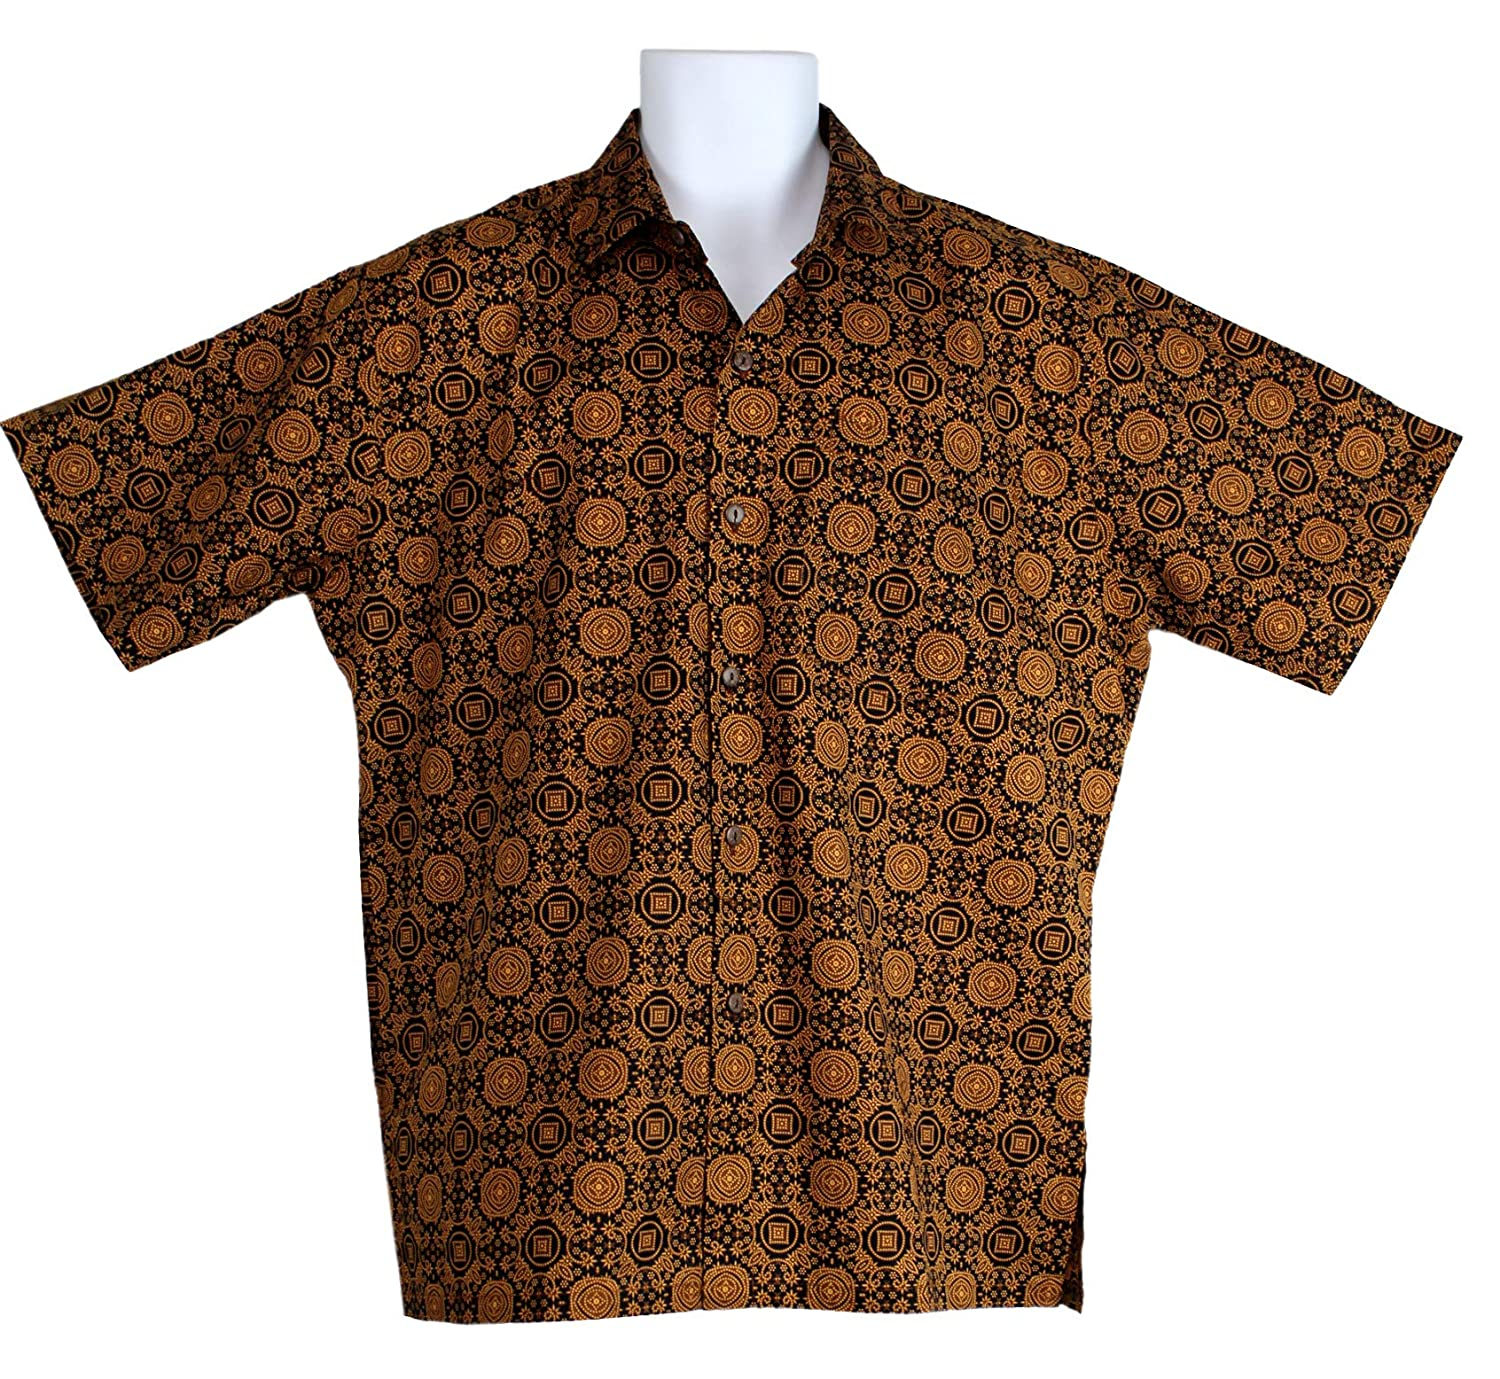 Mens Cotton Island Style Short Sleeve Shirt Traditional Batik Print